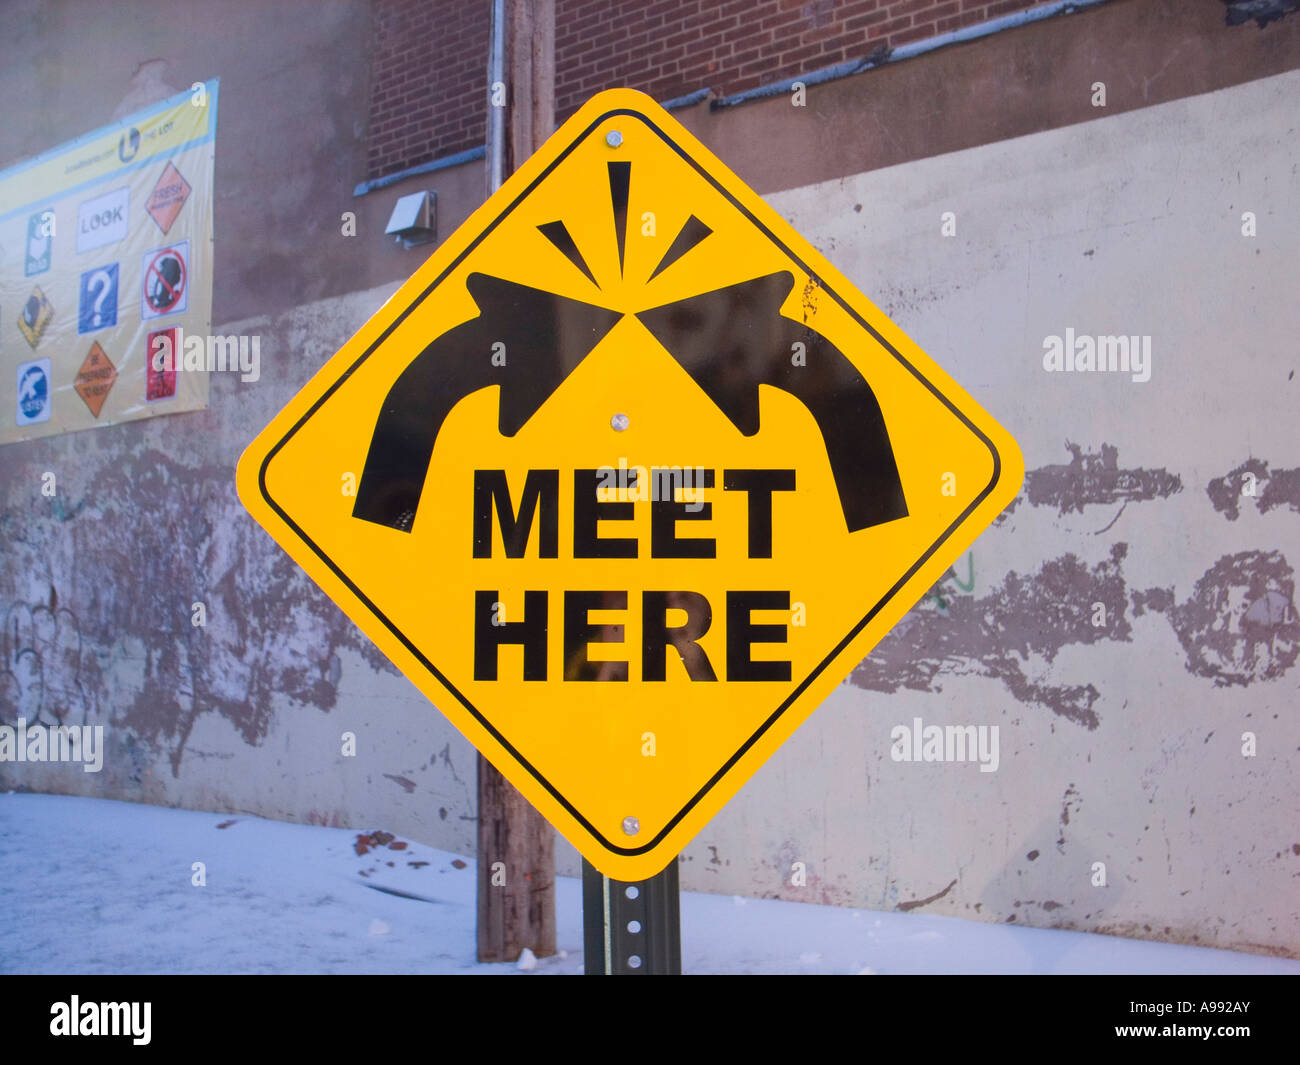 Conceptual sign with arrows asks viewer to meet here outdoor artwork - Stock Image